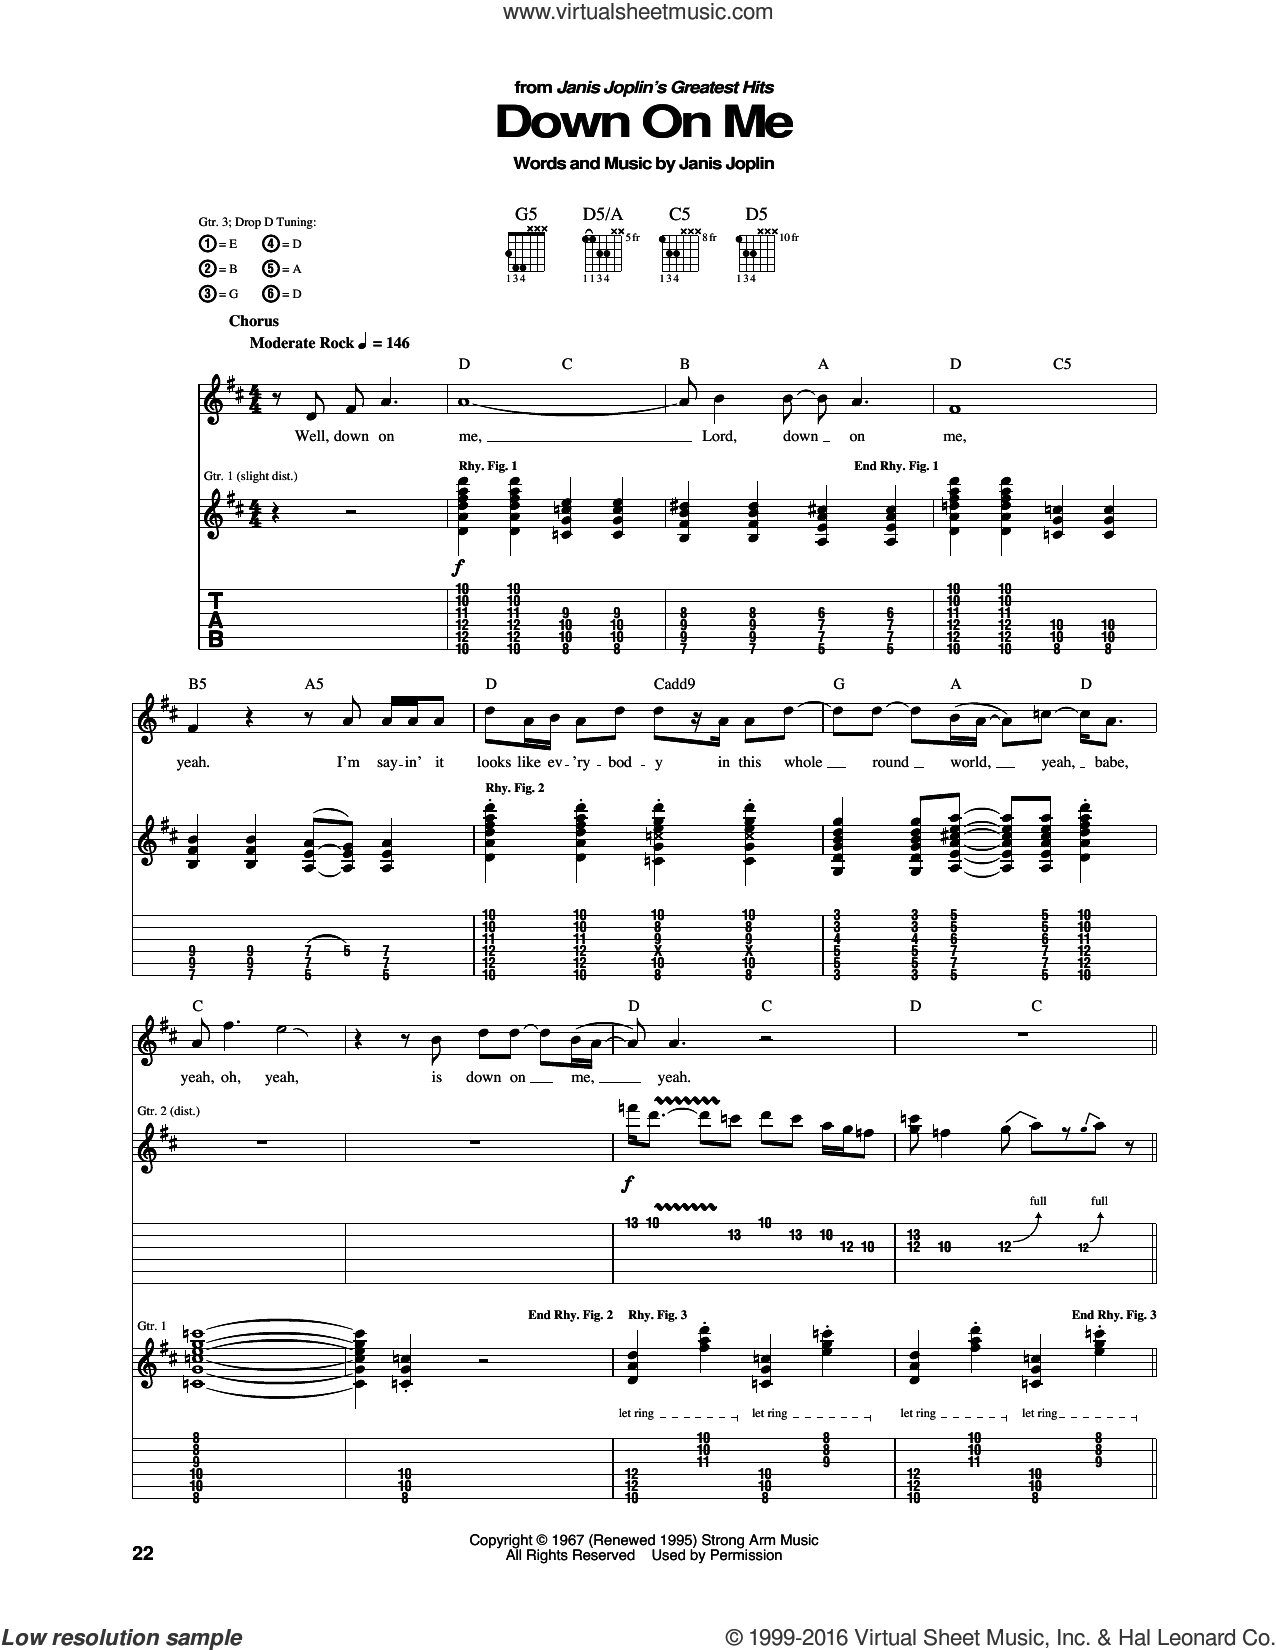 Down On Me sheet music for guitar (tablature) by Janis Joplin. Score Image Preview.